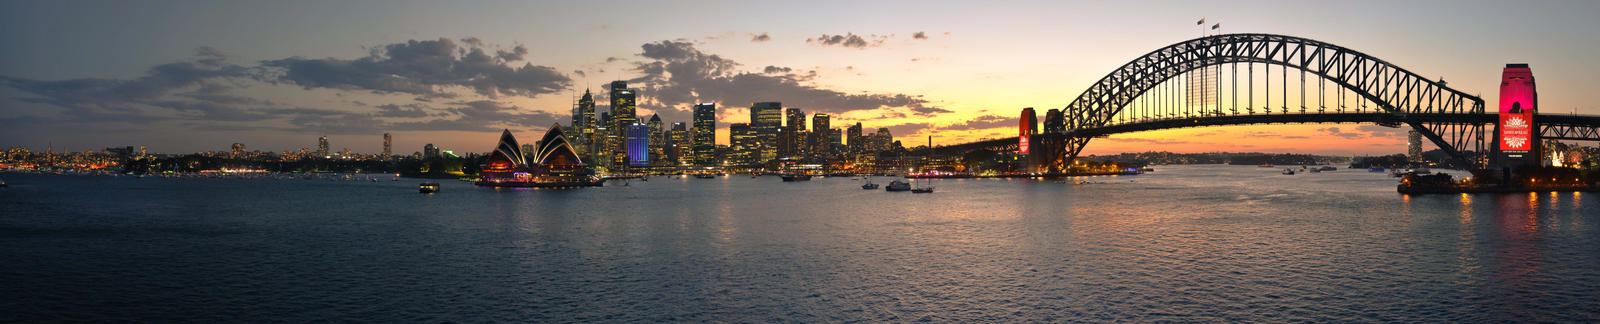 Sydney Harbour by kroysly